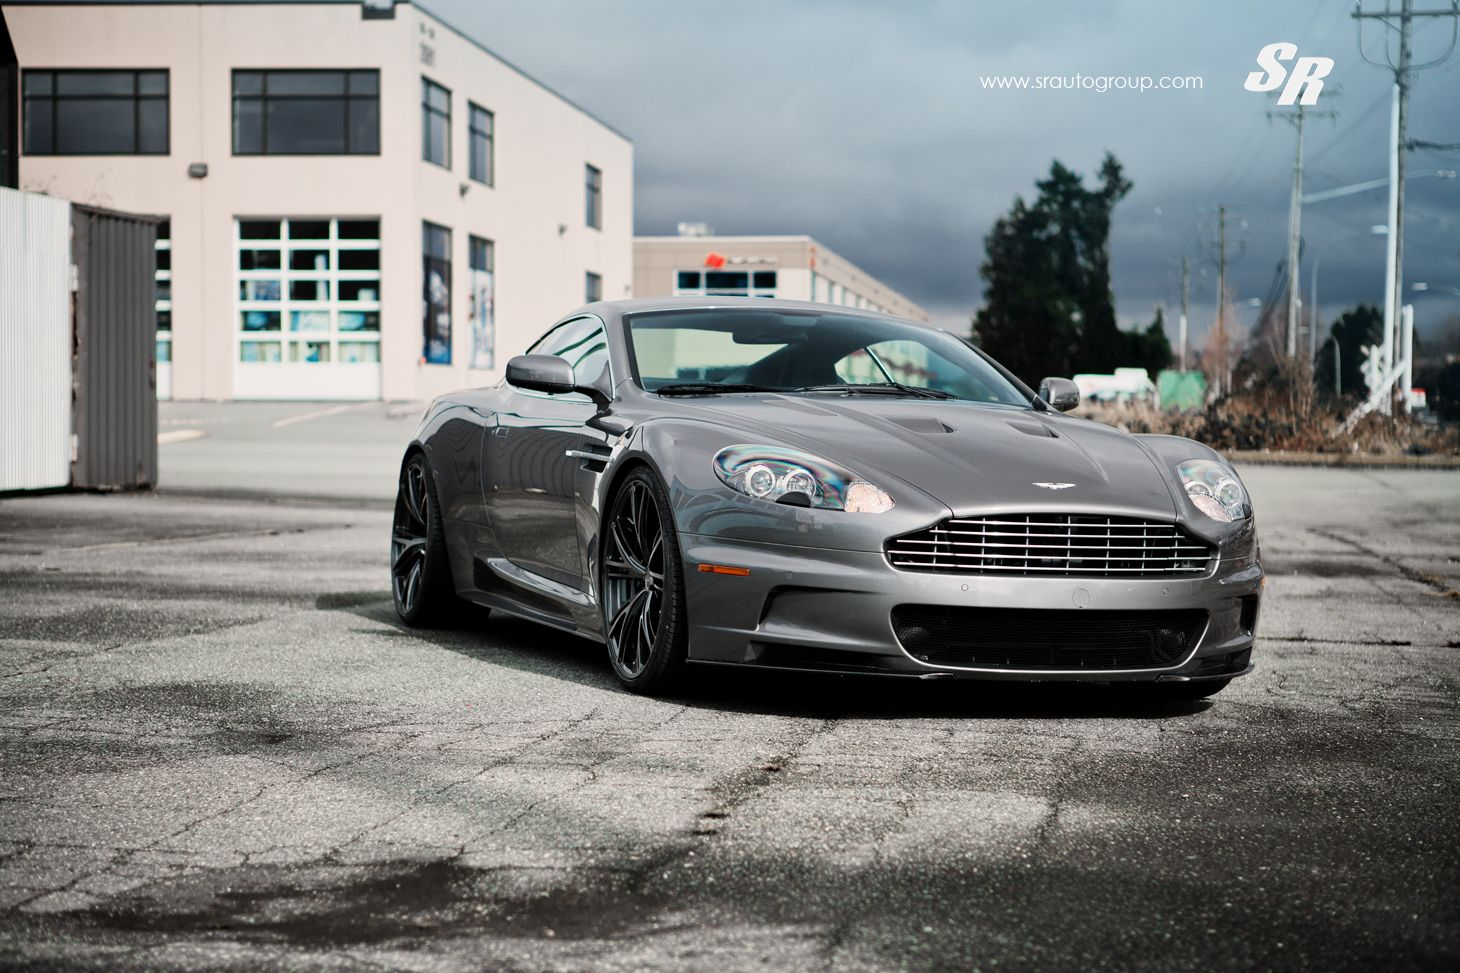 custom cars and more tuning projects: rhapsody in gray - aston